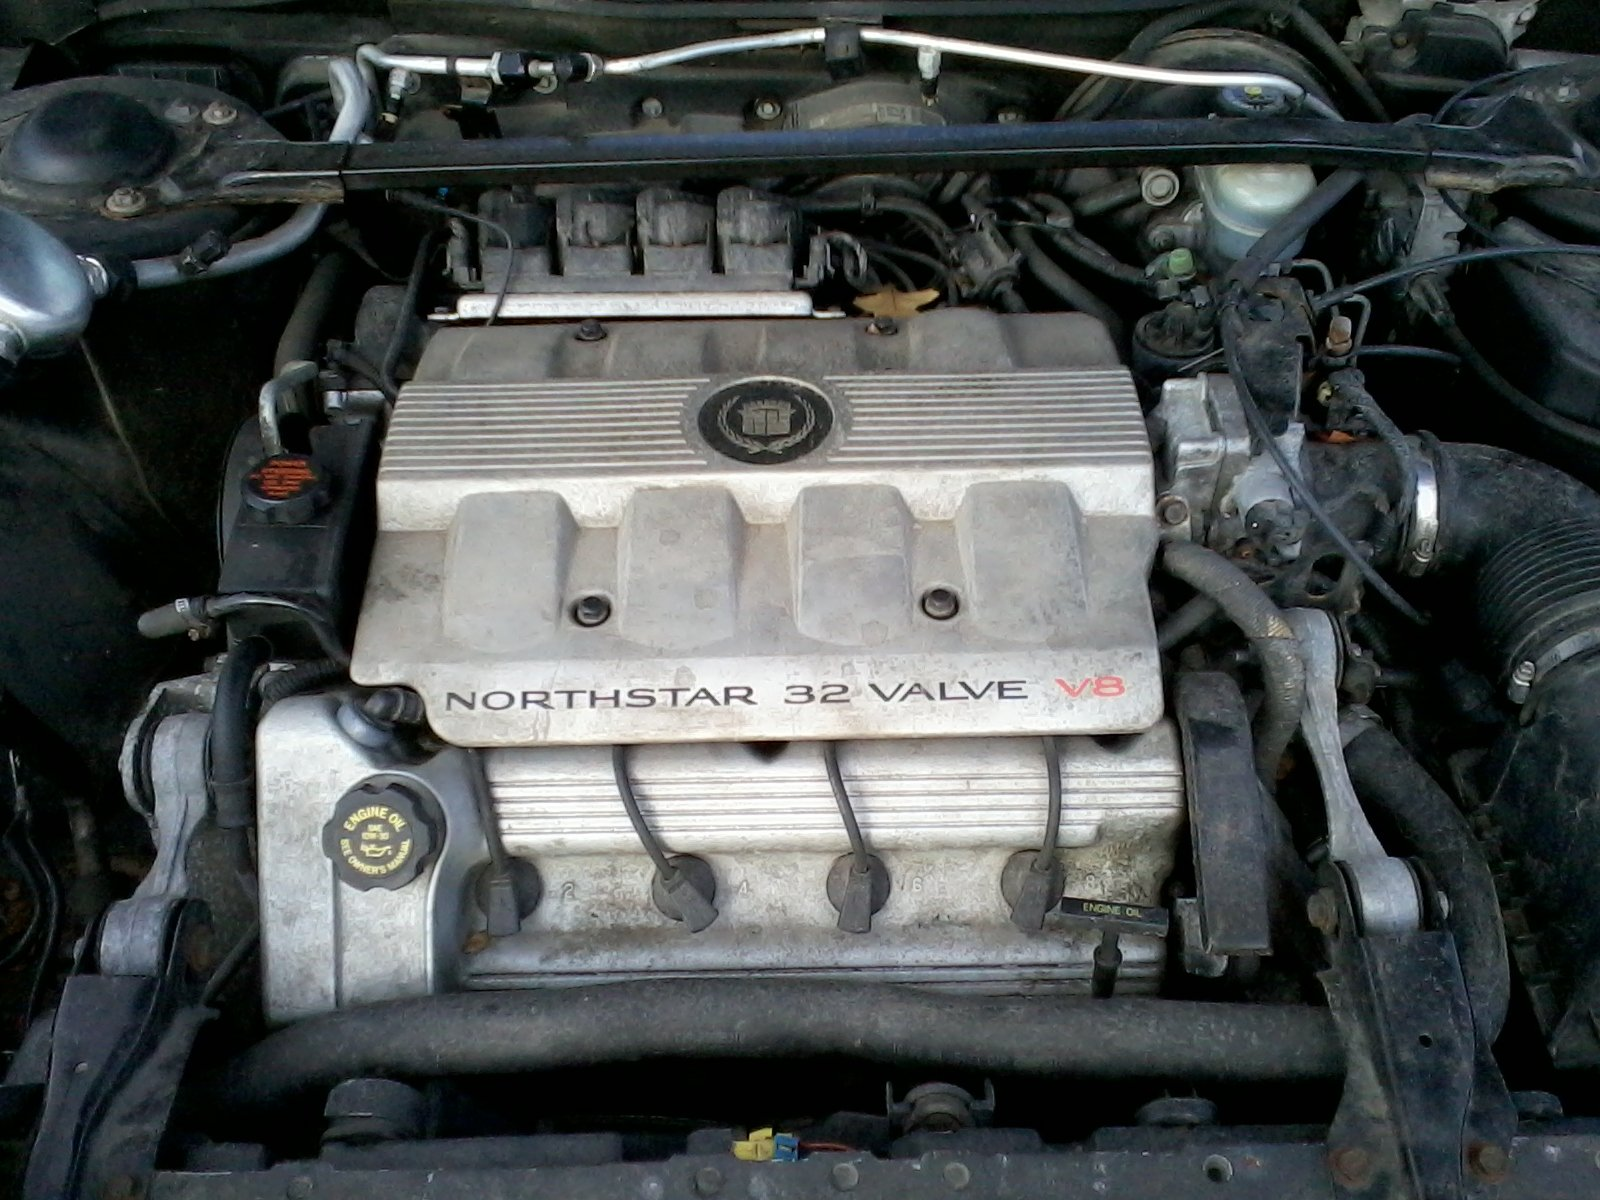 1996pontiacsunfireenginediagram 1998 Cavalier Sunfire Repair